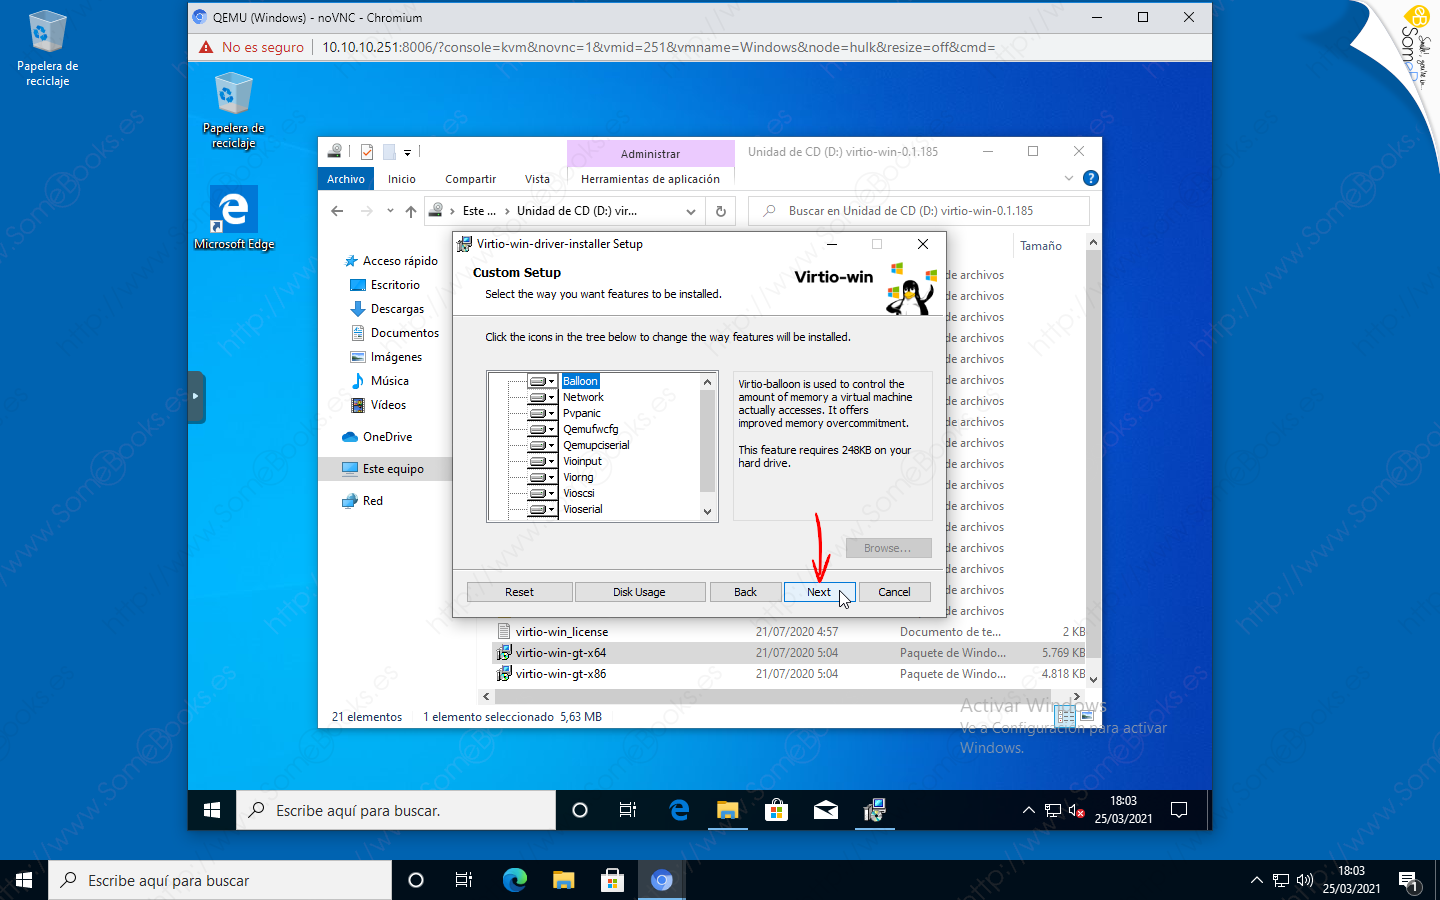 Instalar-Windows-10-en-una-maquina-virtual-sobre-Proxmox-VE-022